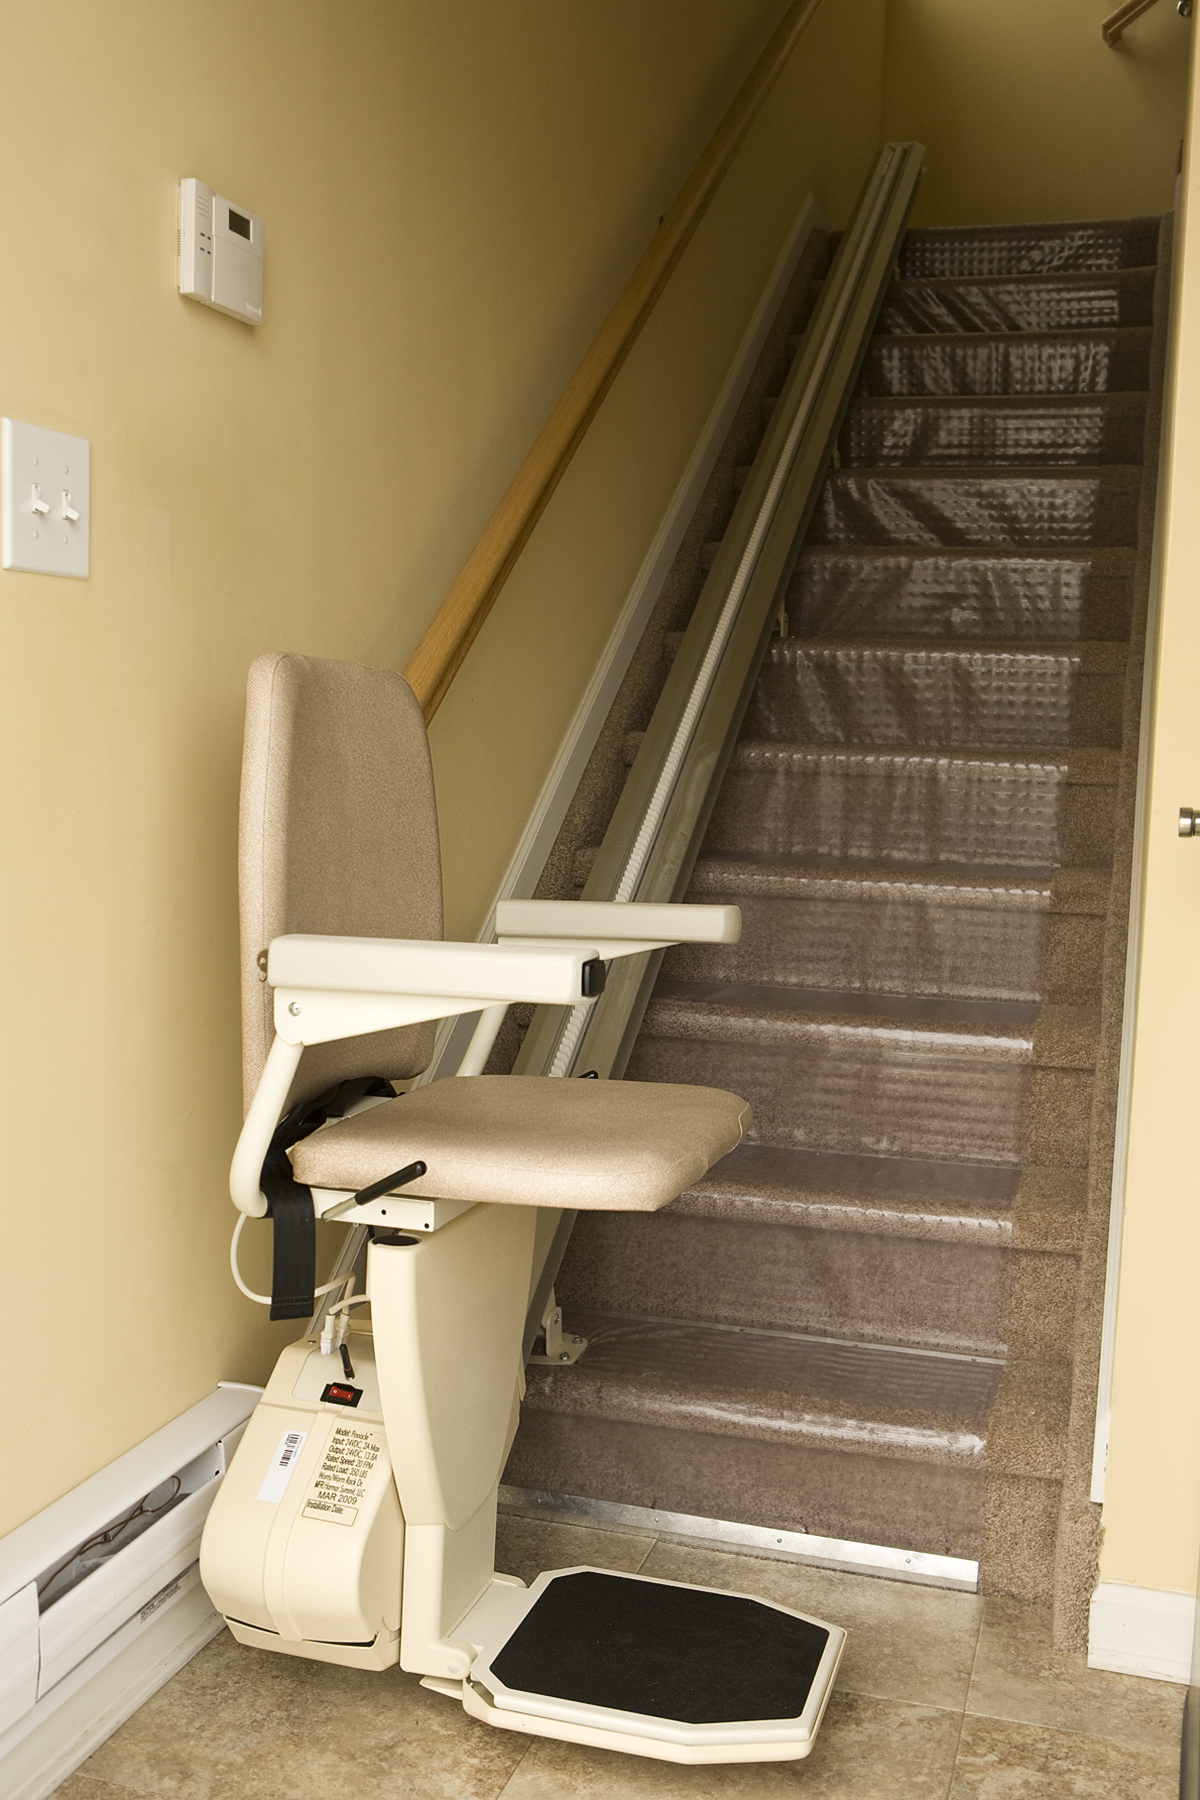 Bathe Safe Walk In Bathtubs - Stair lifts - Bathe Safe Walk In Bathtubs